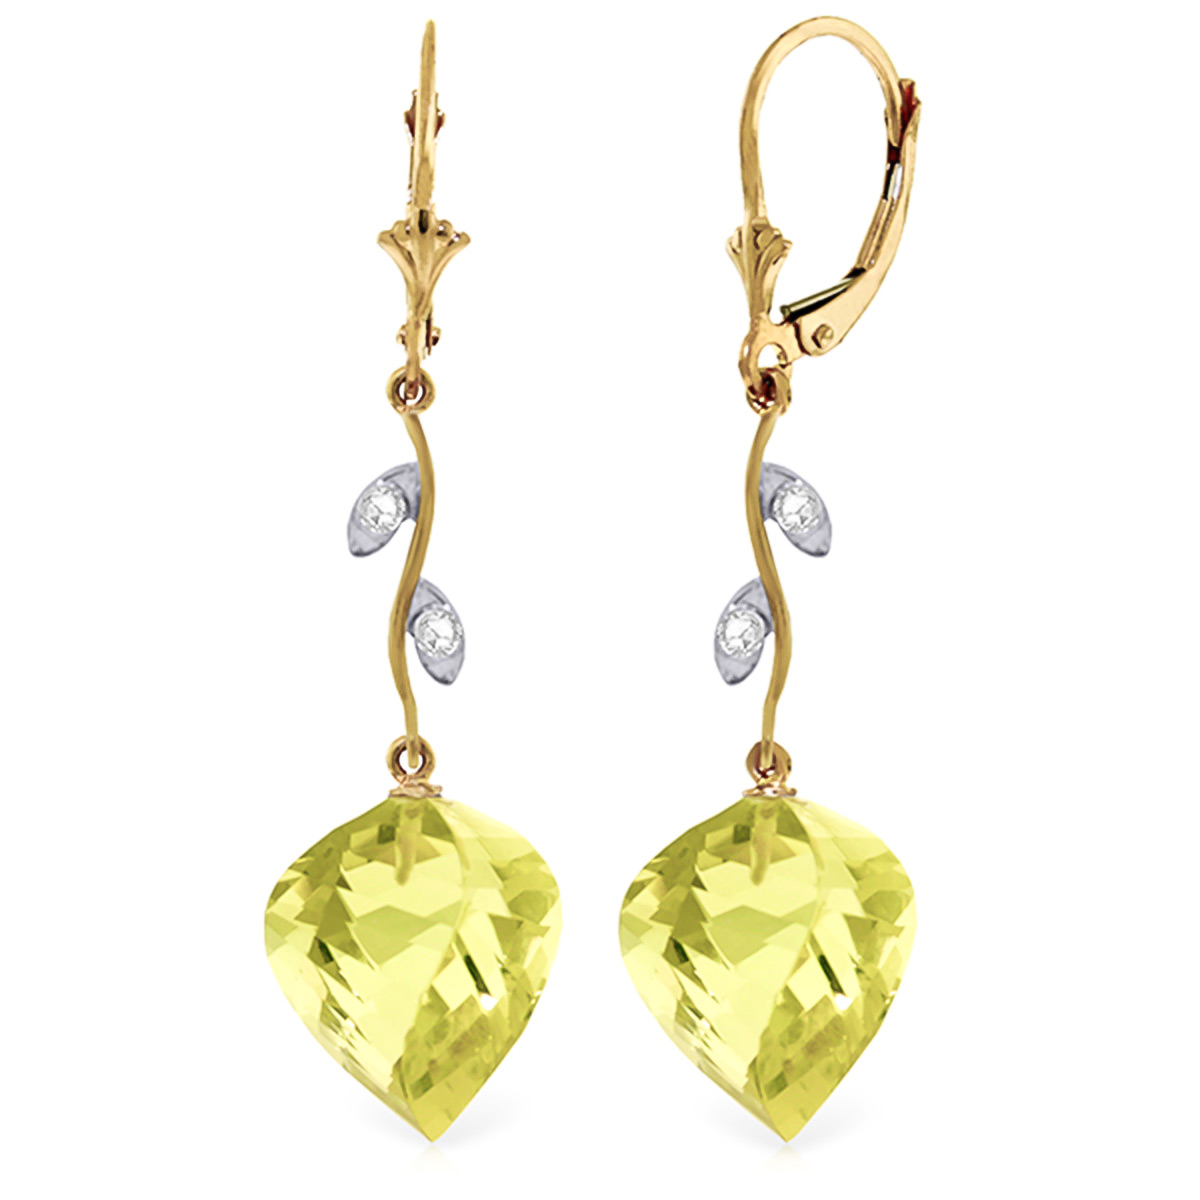 Lemon Quartz Drop Earrings 21.52 ctw in 9ct Gold